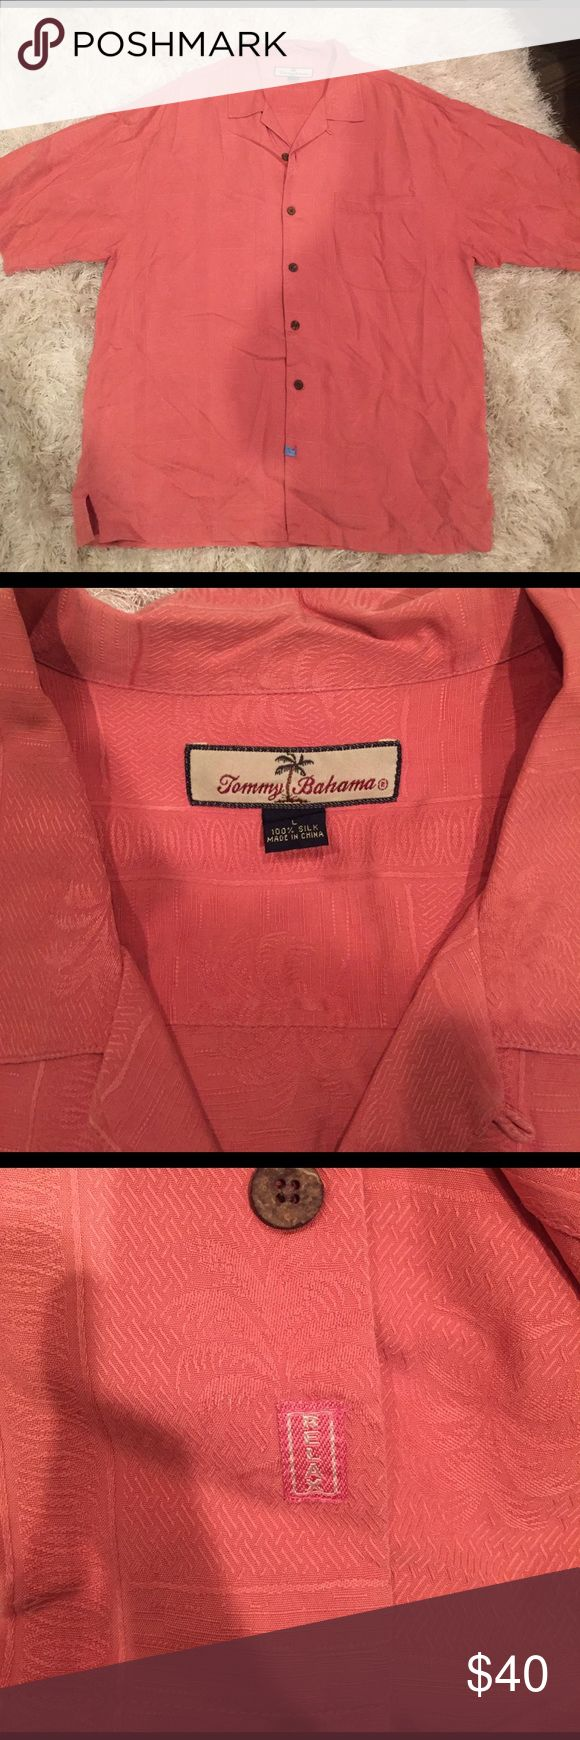 """Tommy Bahamas 100% silk """"Relax"""" shirt Tommy Bahama 100% silk breeze. Salmon colored with subtle palm tree print. Just dry cleaned. Size Large. Button up. Comes with two replaceable buttons. In really great condition! Tommy Bahama Shirts"""